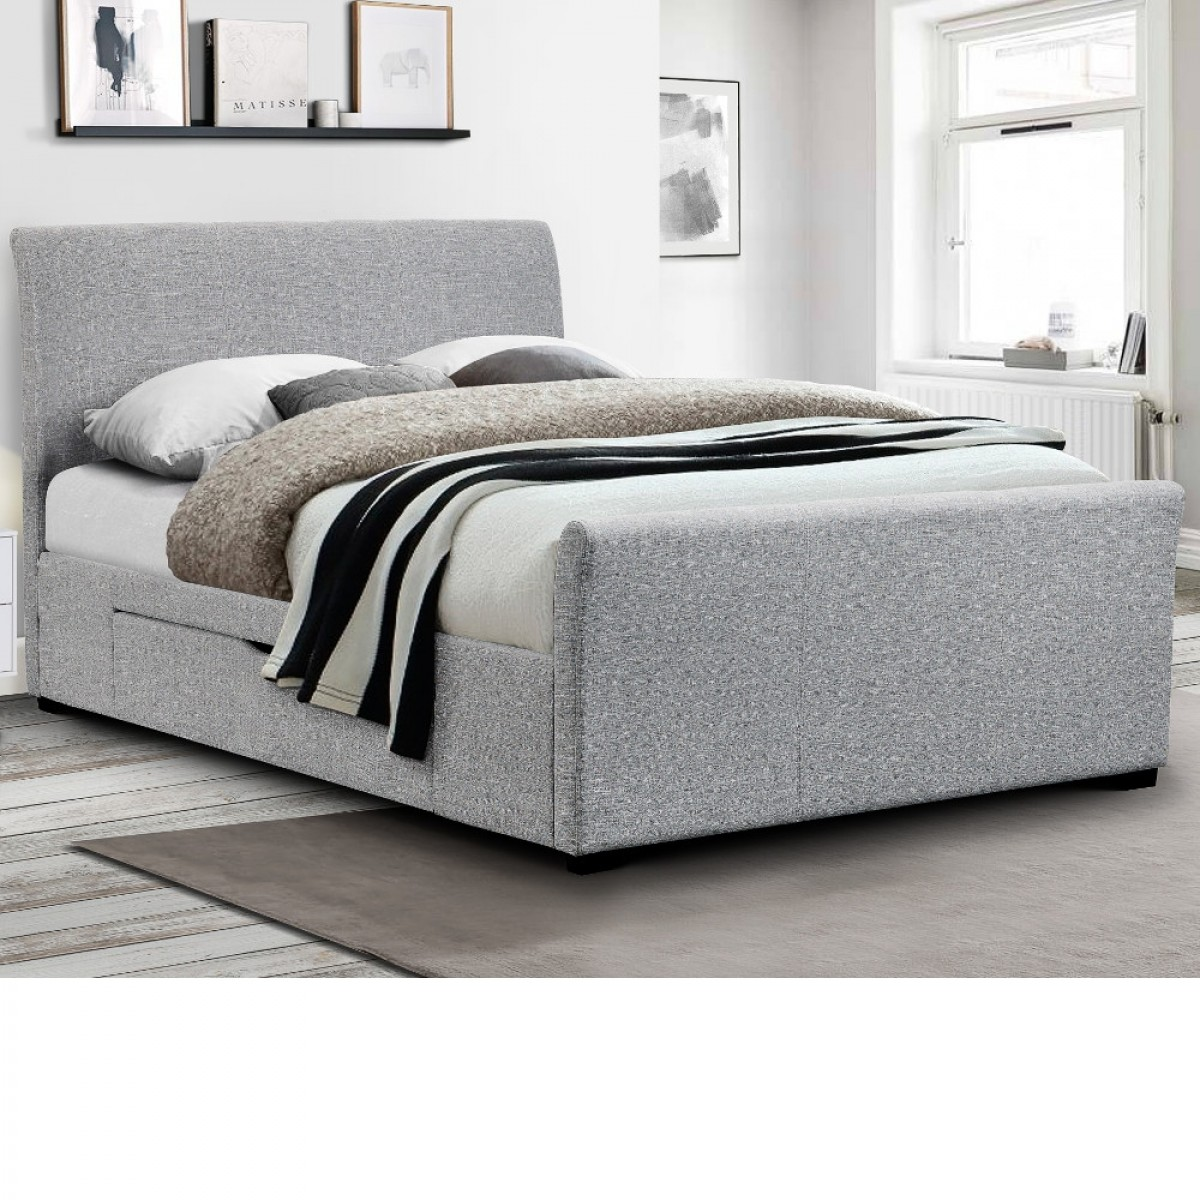 Capri Light Grey Fabric 2 Drawer Storage Sleigh Bed